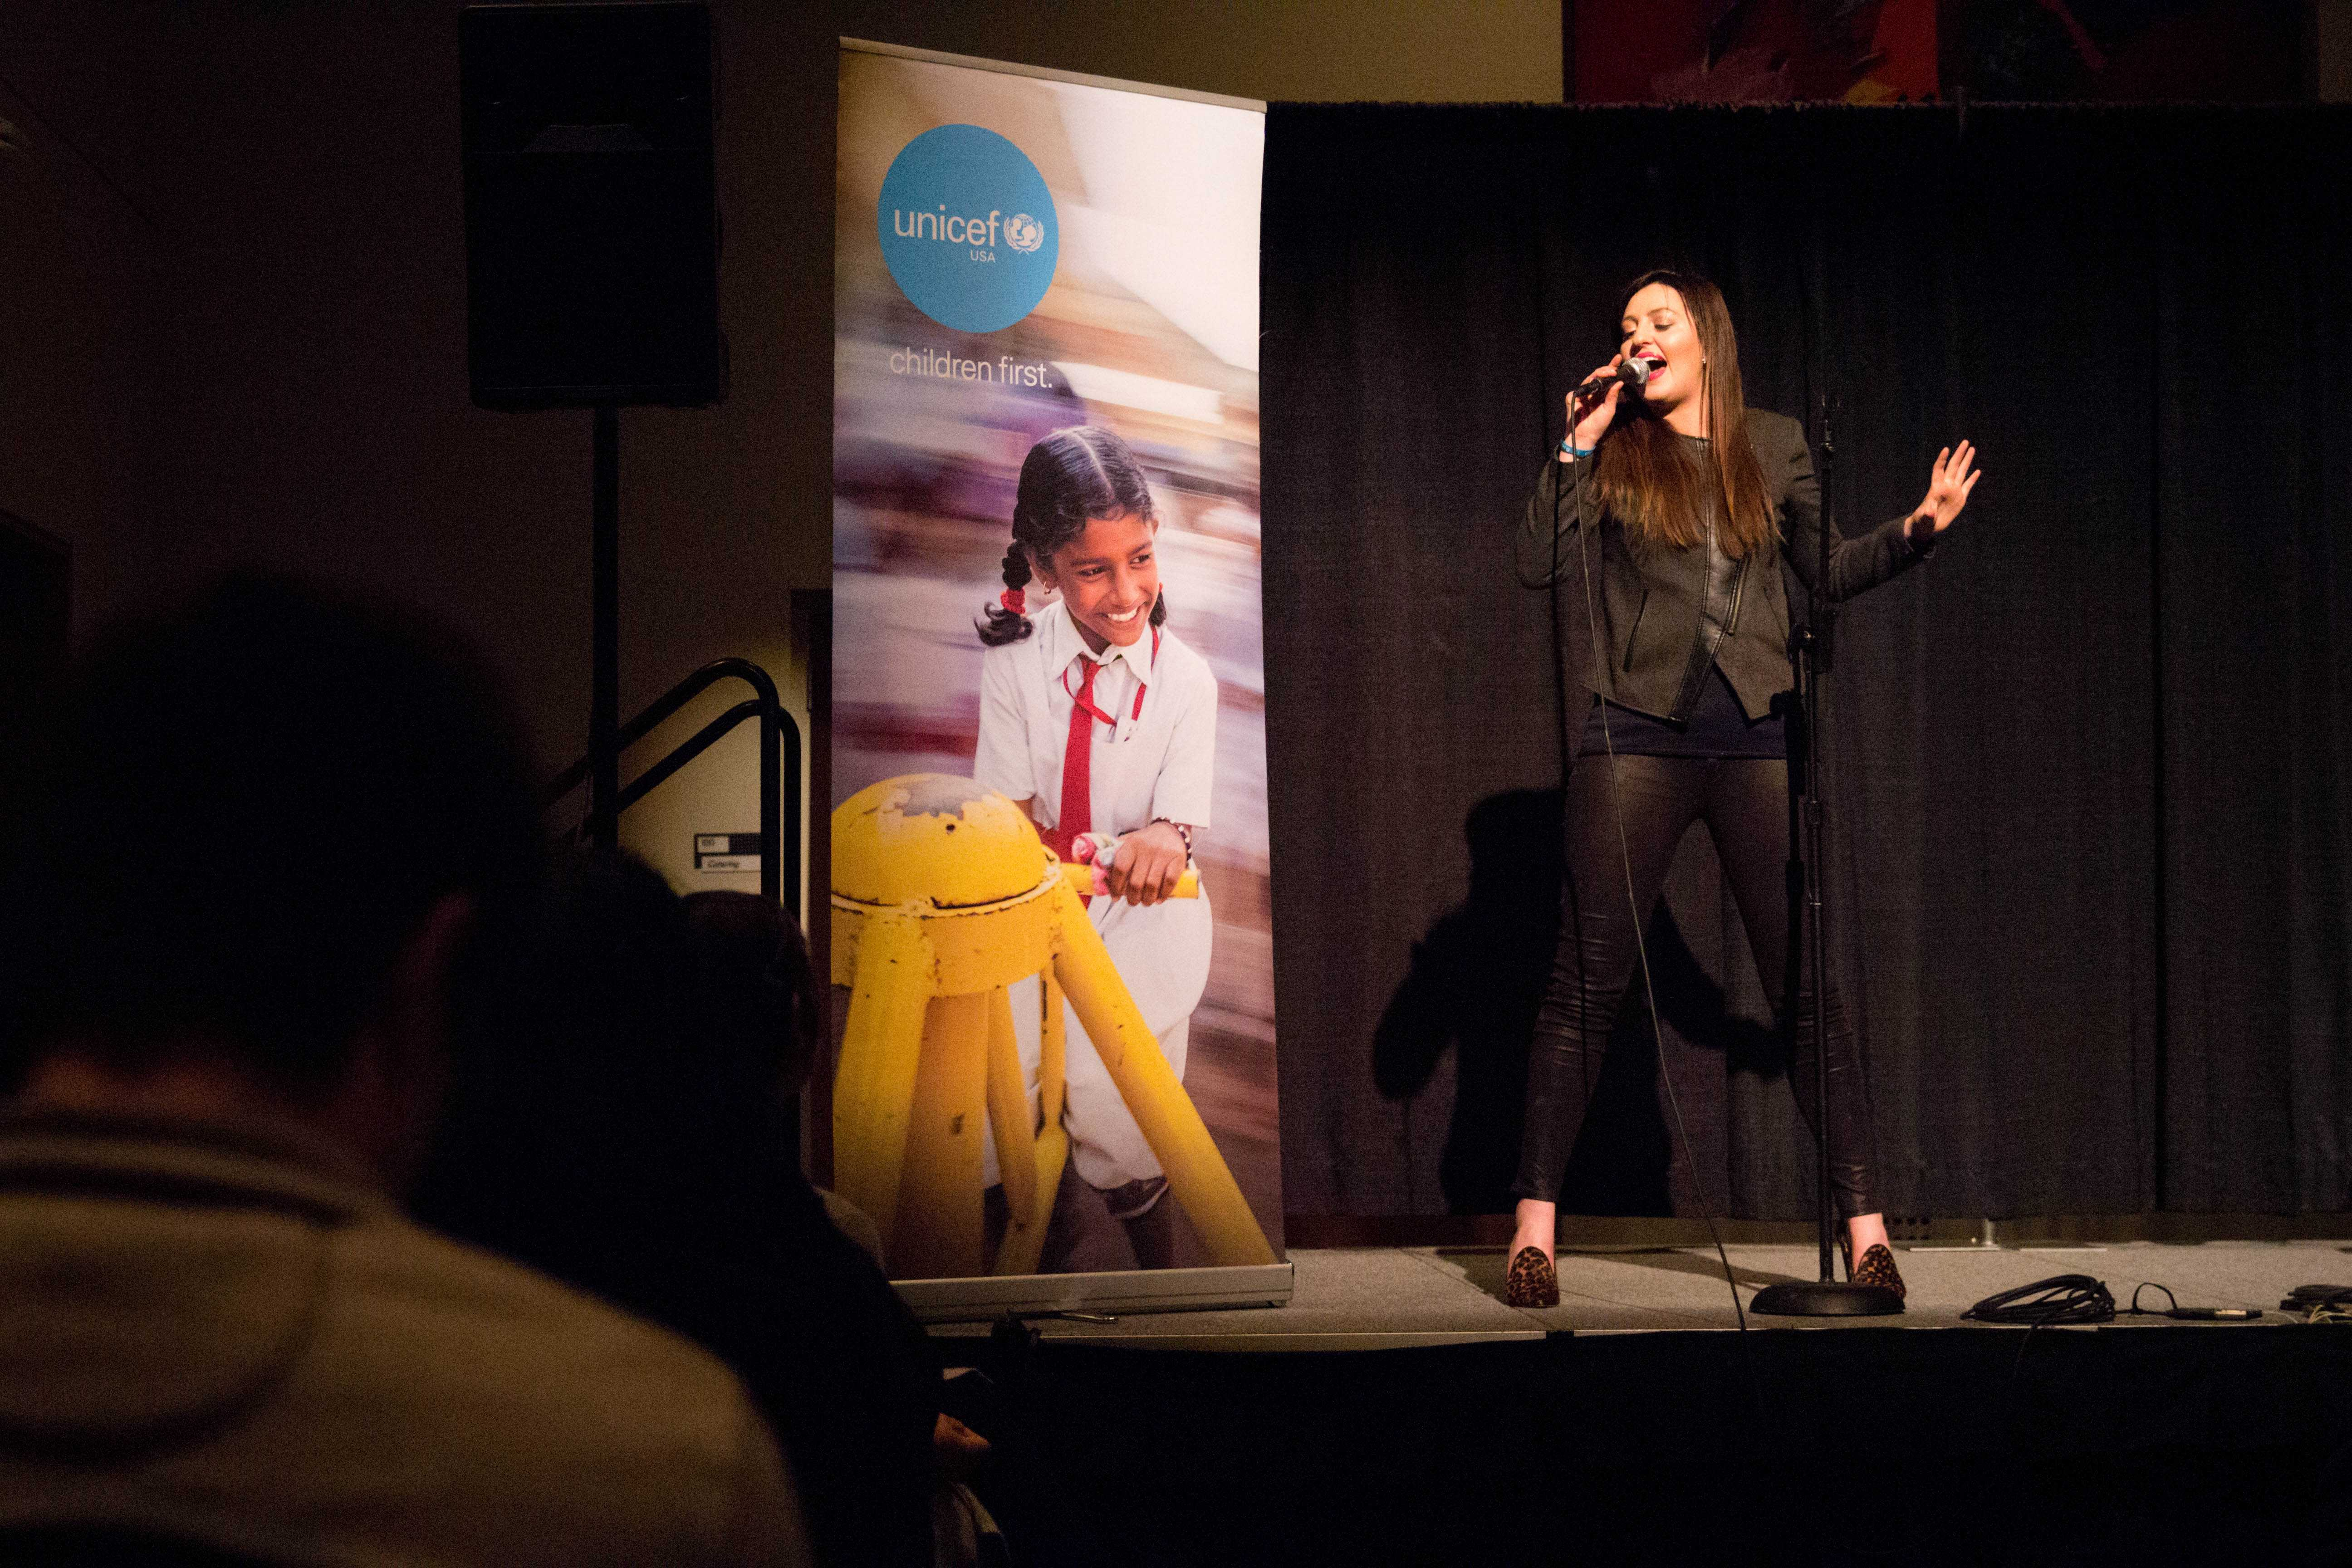 Vanderbilt UNICEF End Trafficking Week featured a performance by Megan Wilde on Friday, February 3, 2018 at the SLC. She shared a sneak peek to a new song she will be releasing that addresses the issue of human trafficking. (Photo by Emily Goncalves)